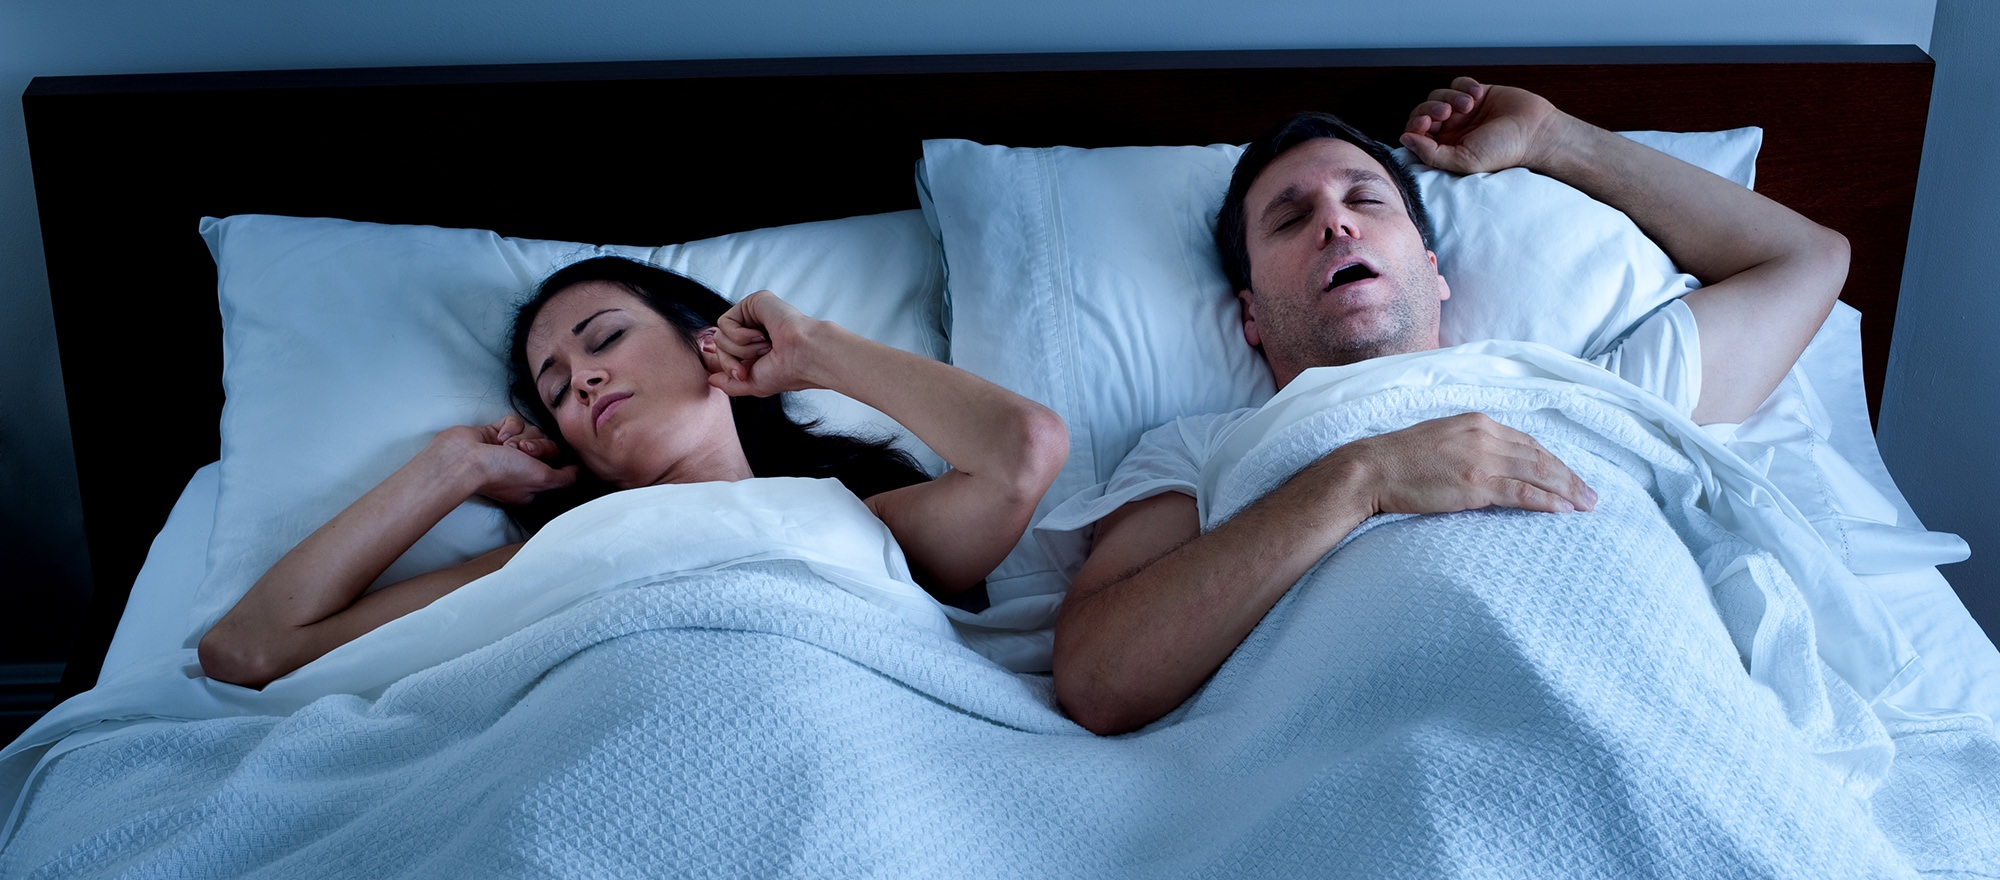 CPAP_PartnerSnoring